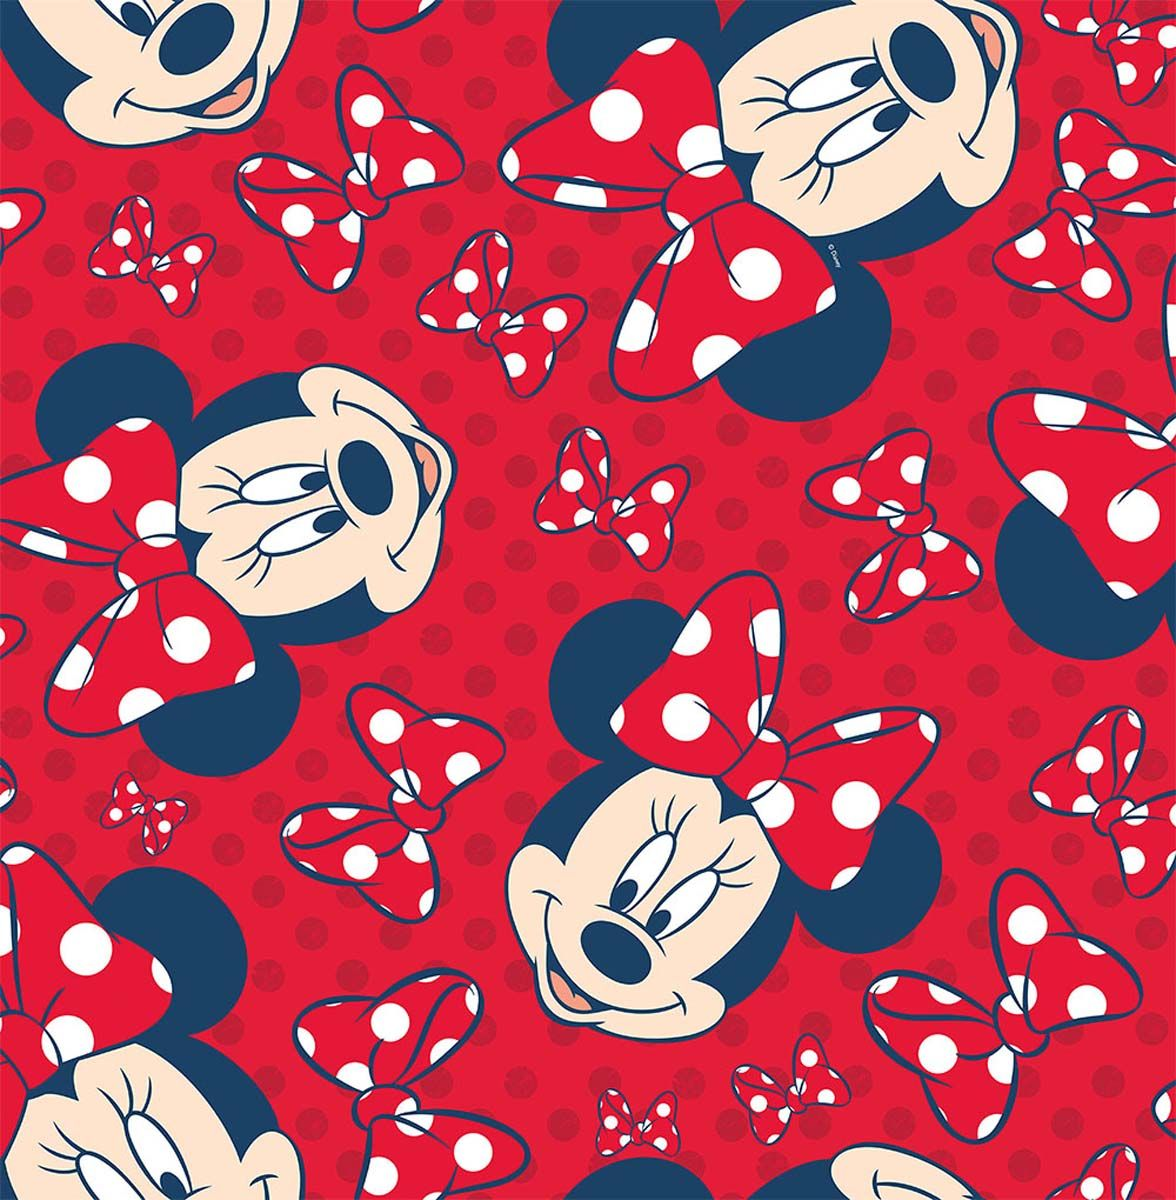 Red Minnie Mouse Wallpapers - Top Free